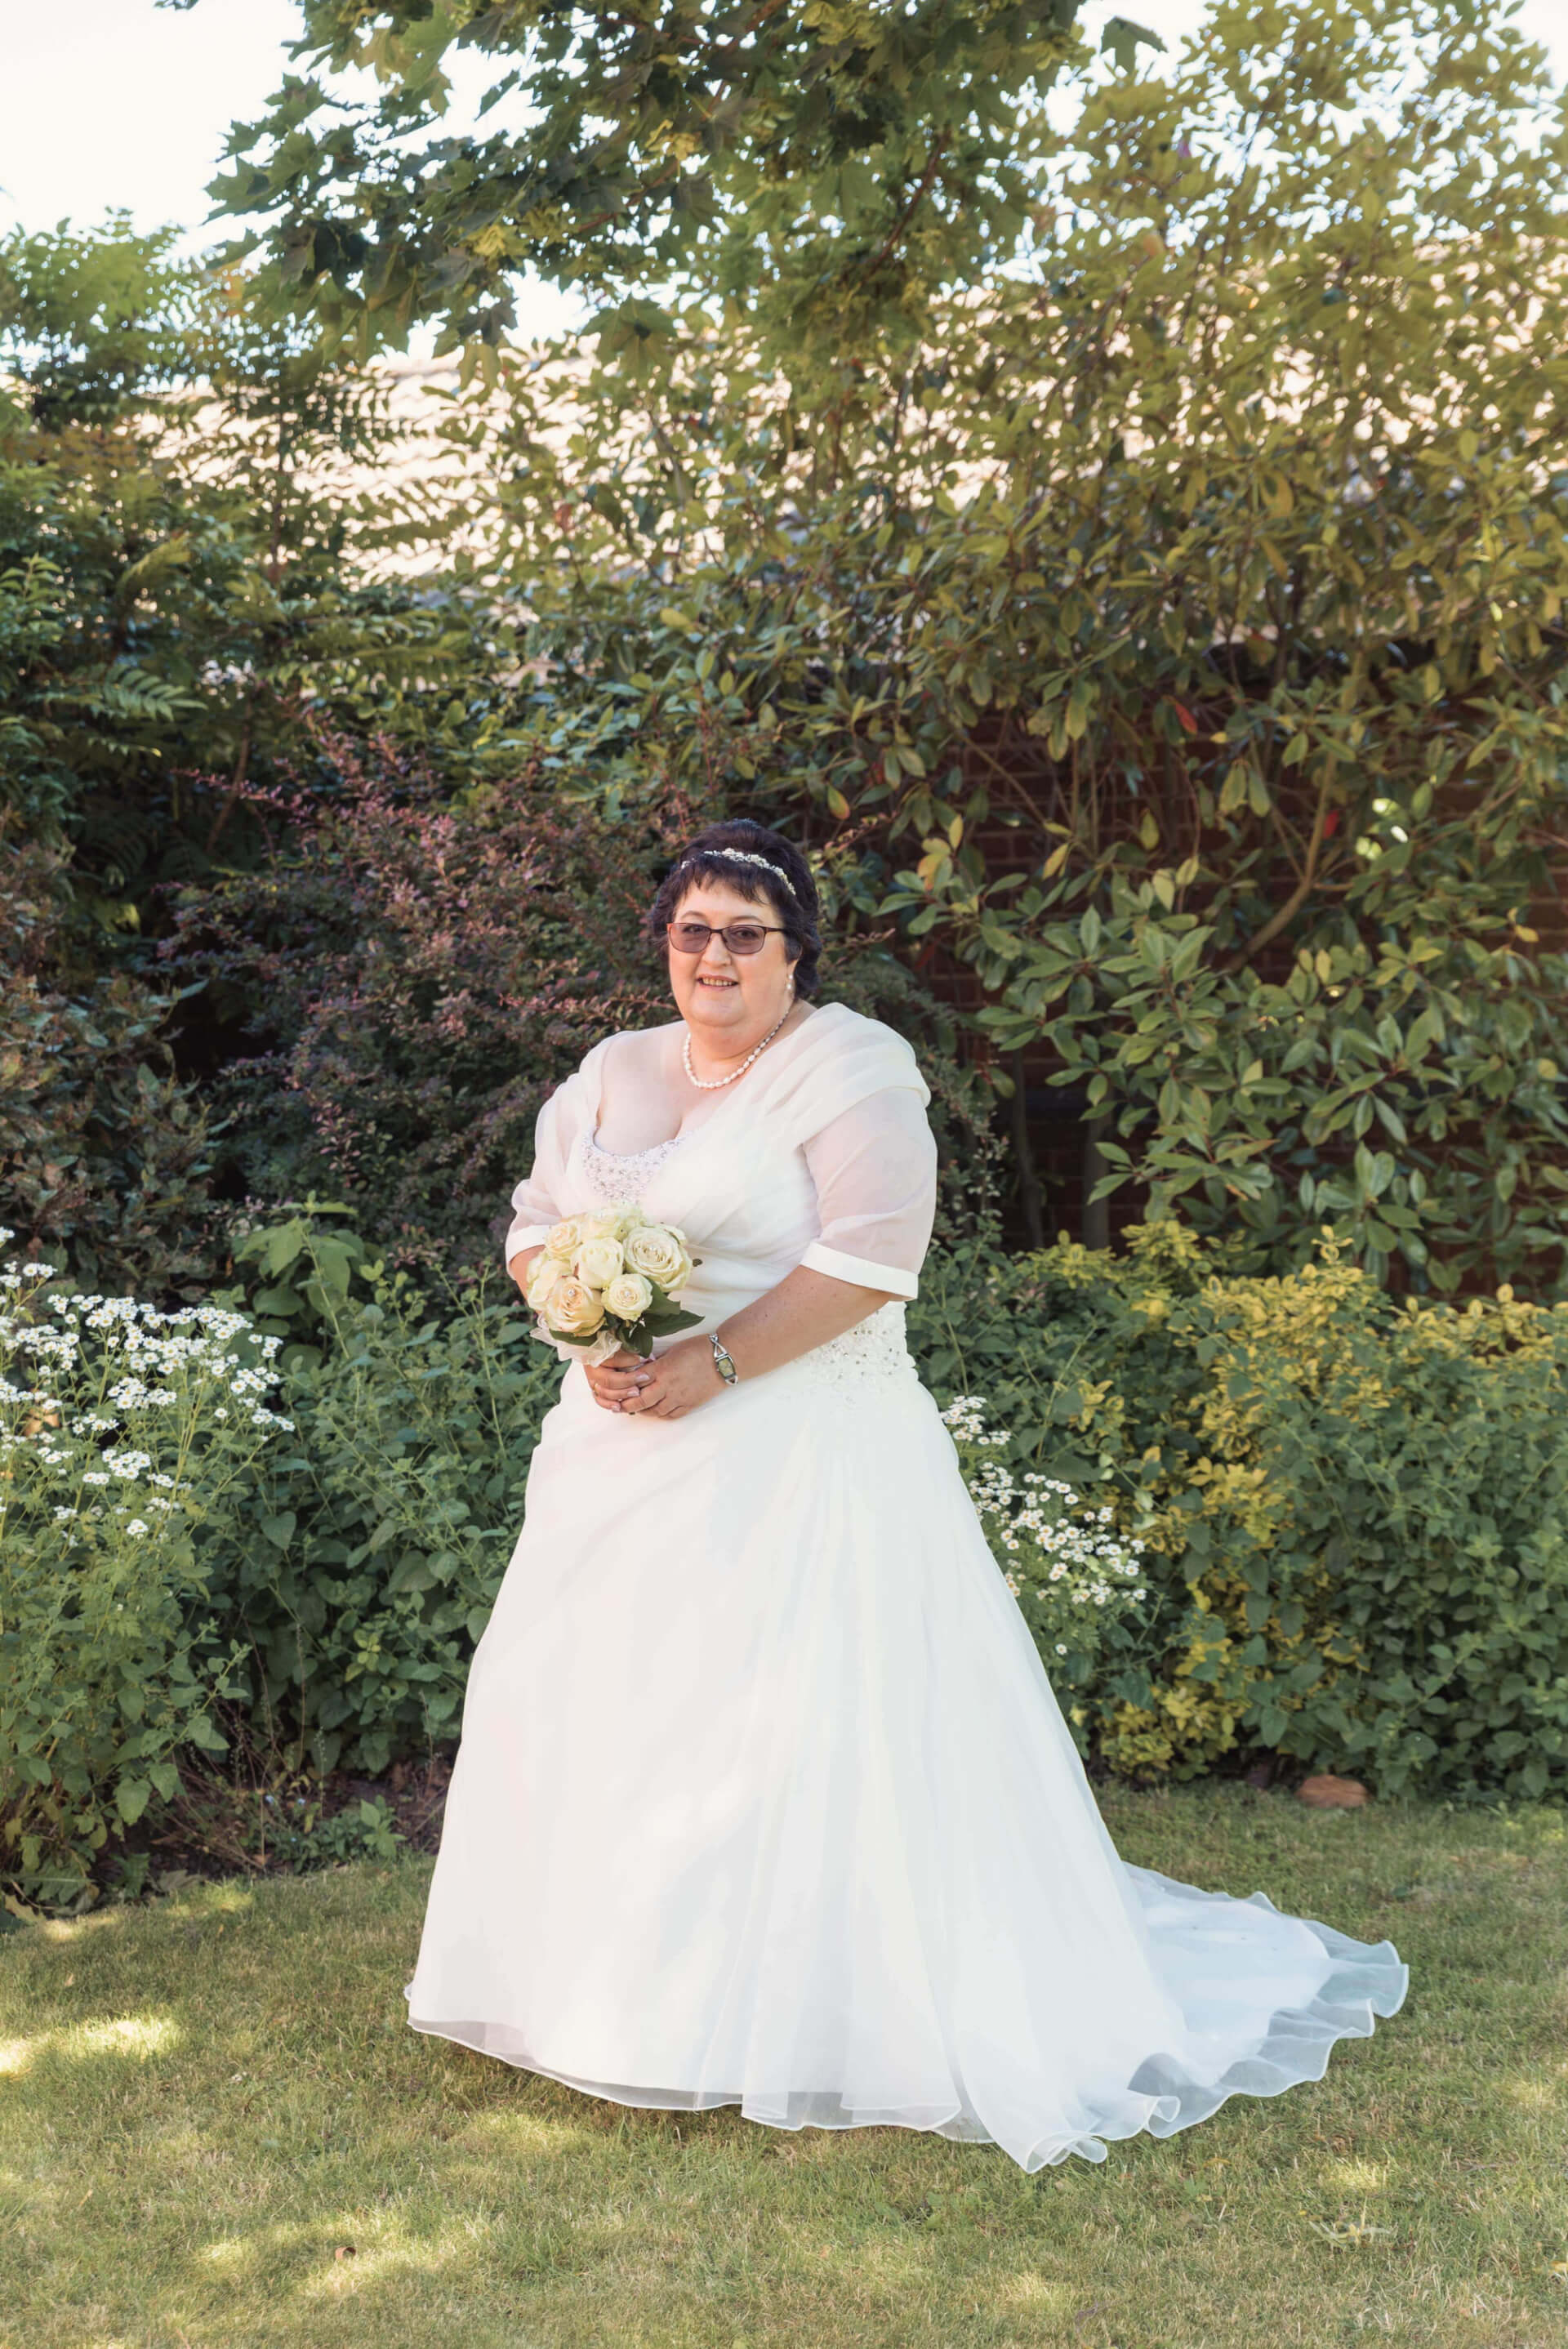 Bridal Portrait in Gardens at Woodlands Hotel, Spalding by Slice of Life Photography